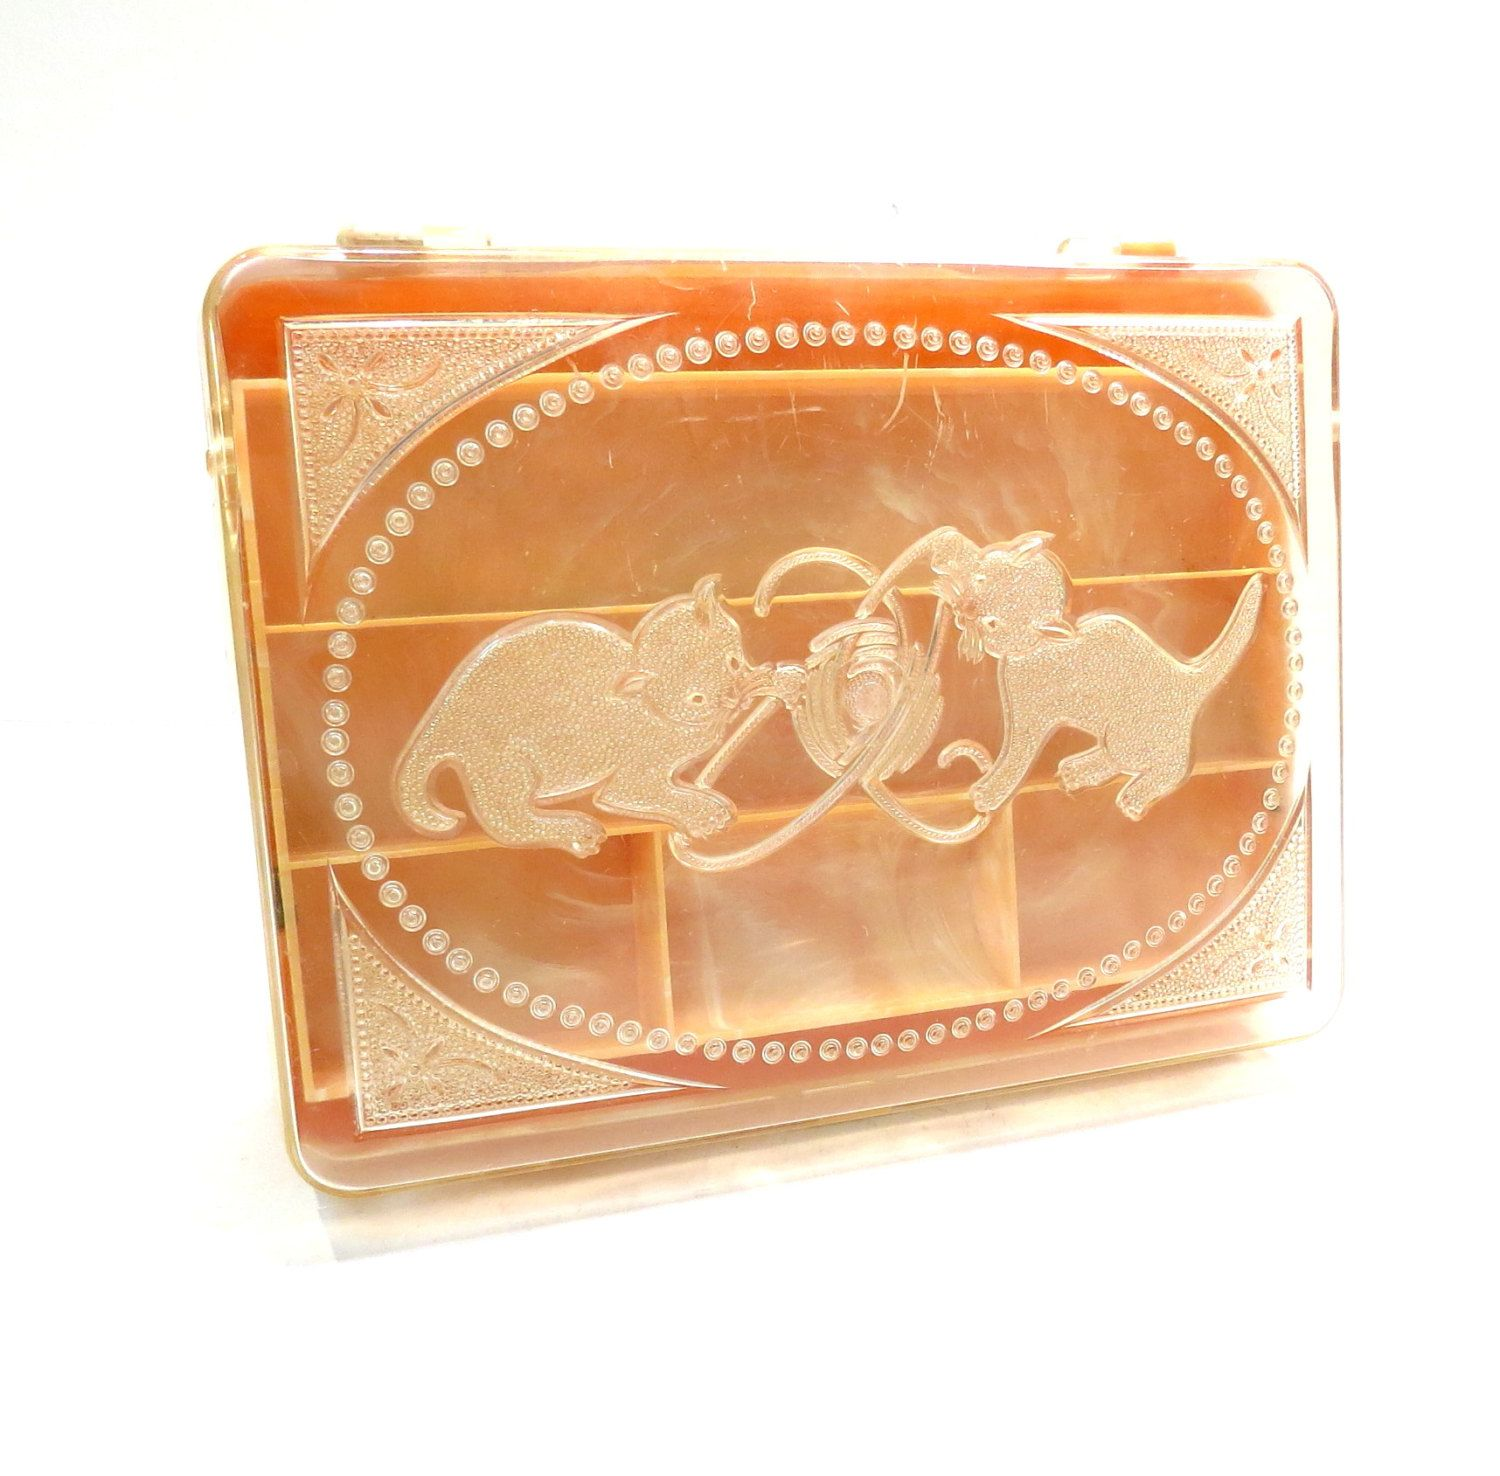 Kittens with Yarn Lucite Jewelry Box Hommer Mfg Vintage 1950s Pink